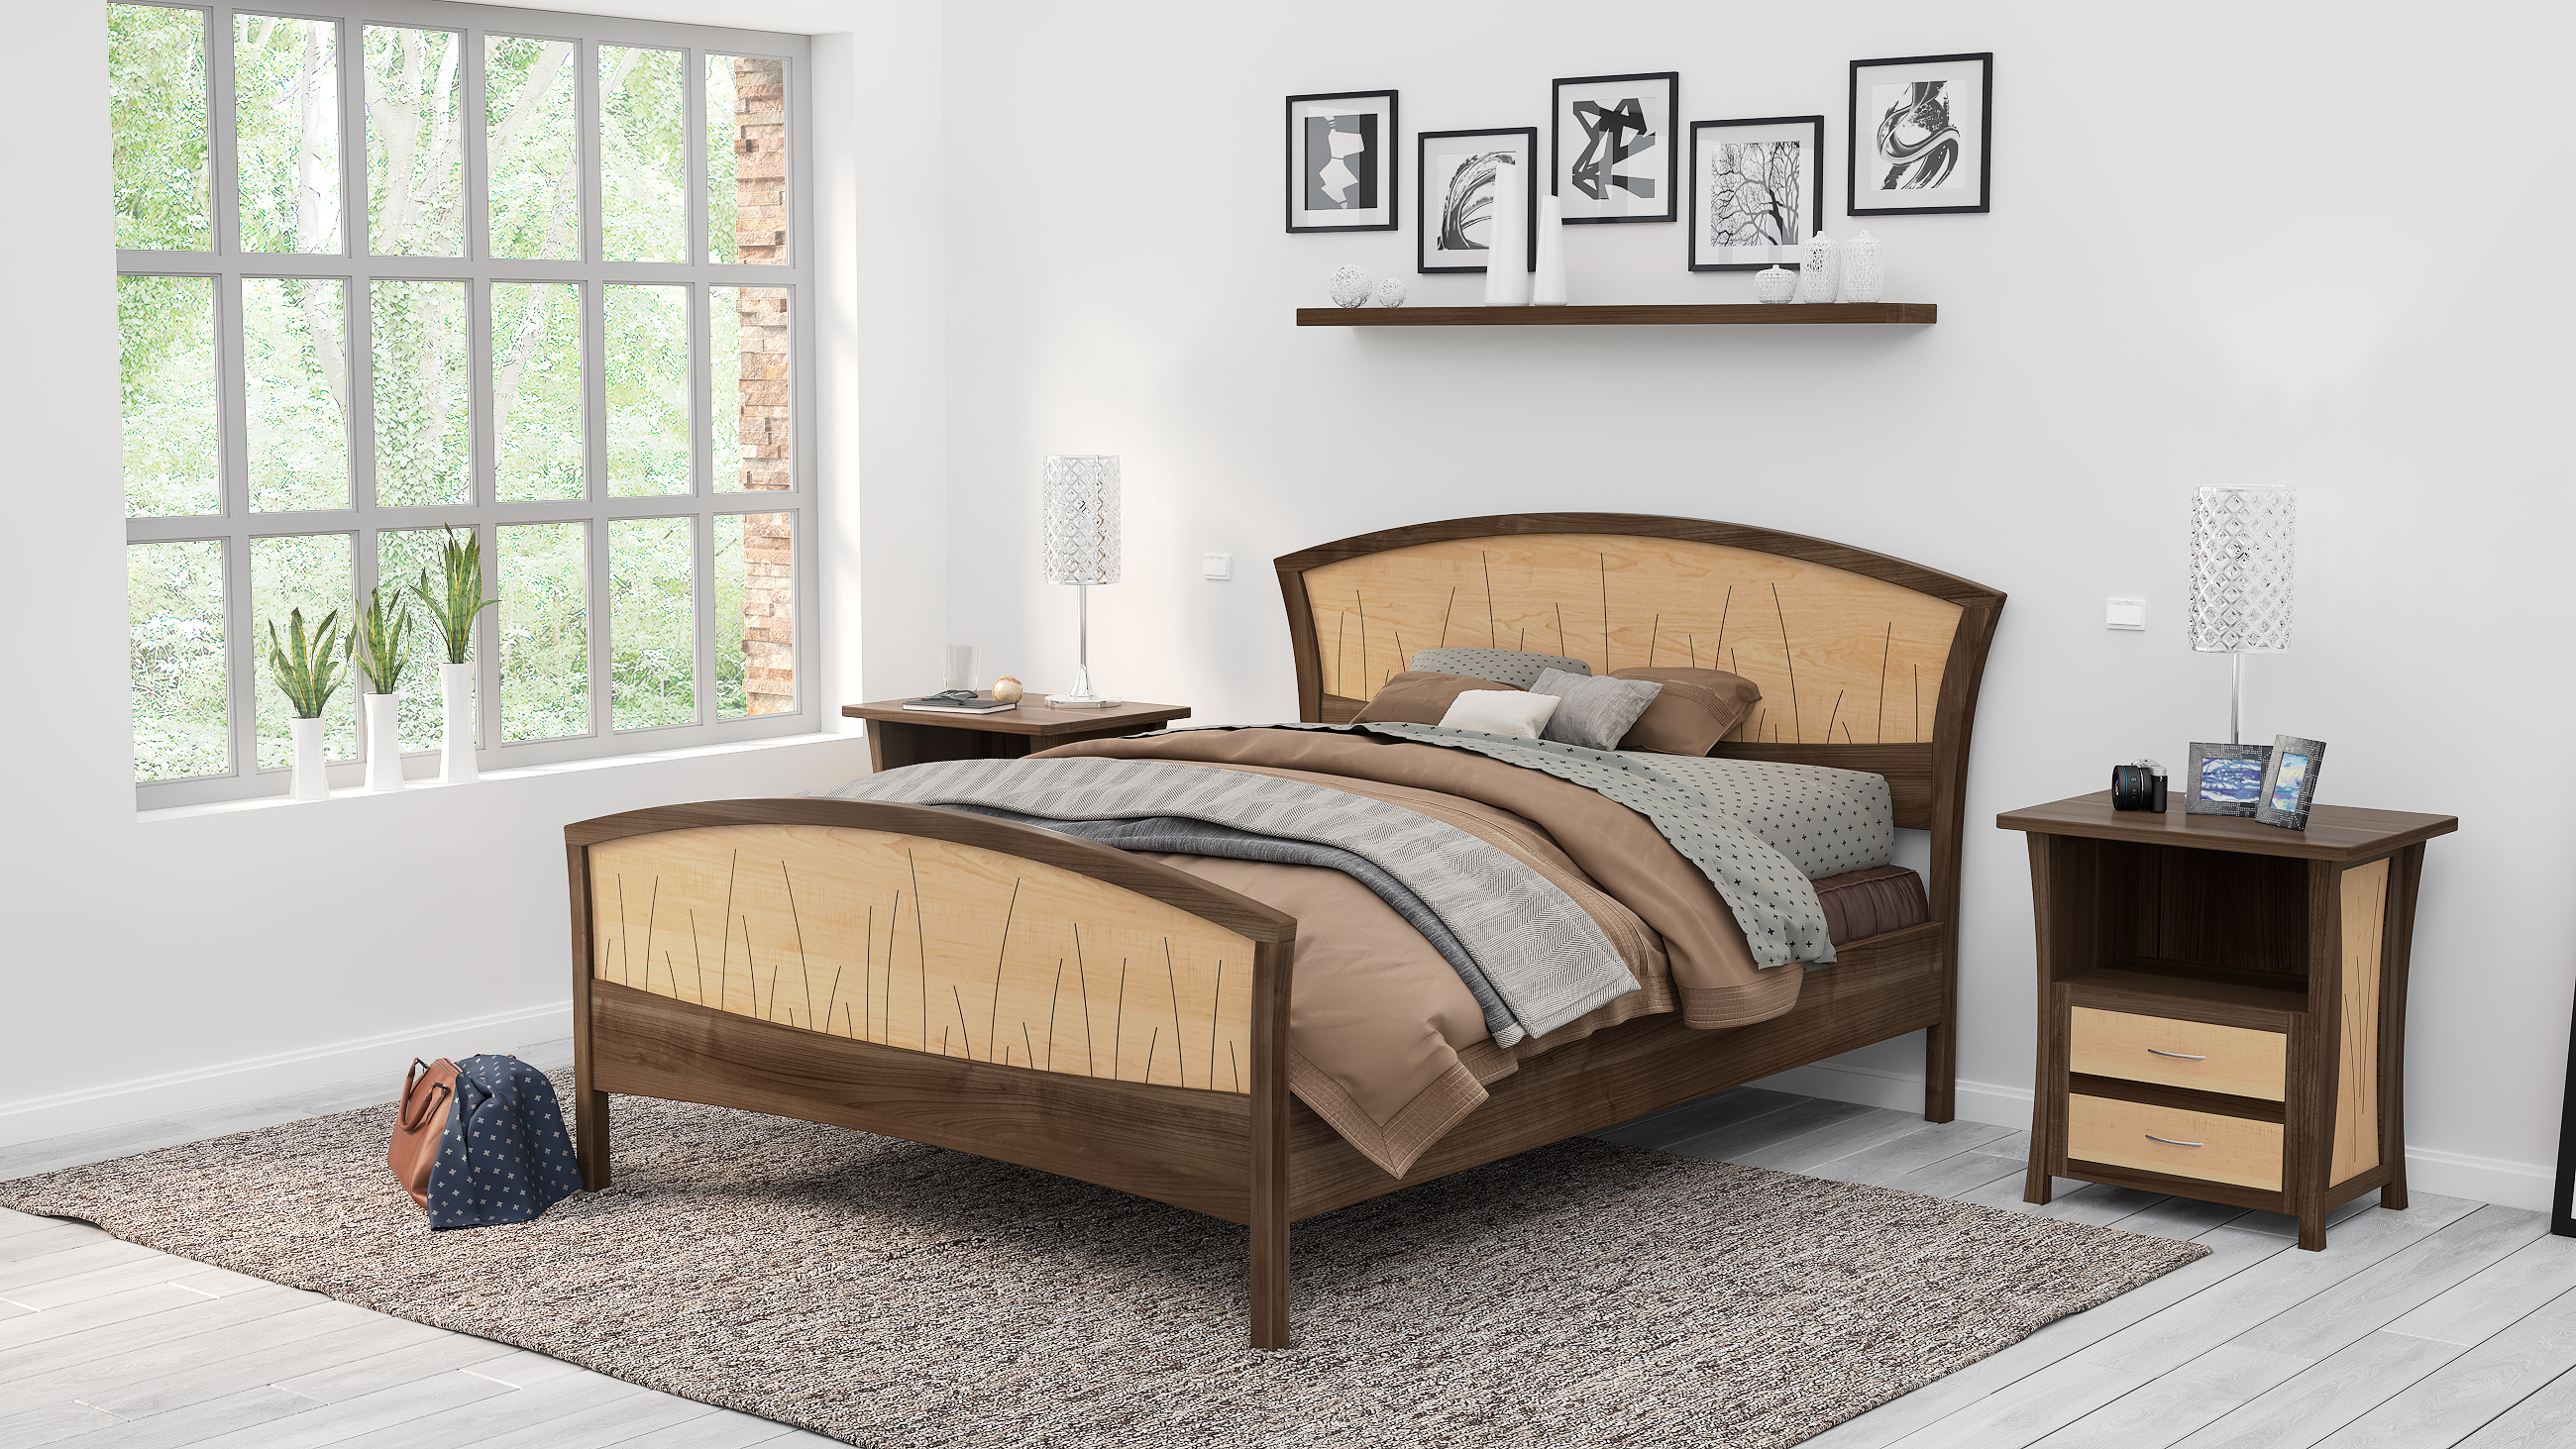 Custom Modern Bed Frame Walnut Headboard Wood Bed King Size Bed Queen Art Deco By Nathan